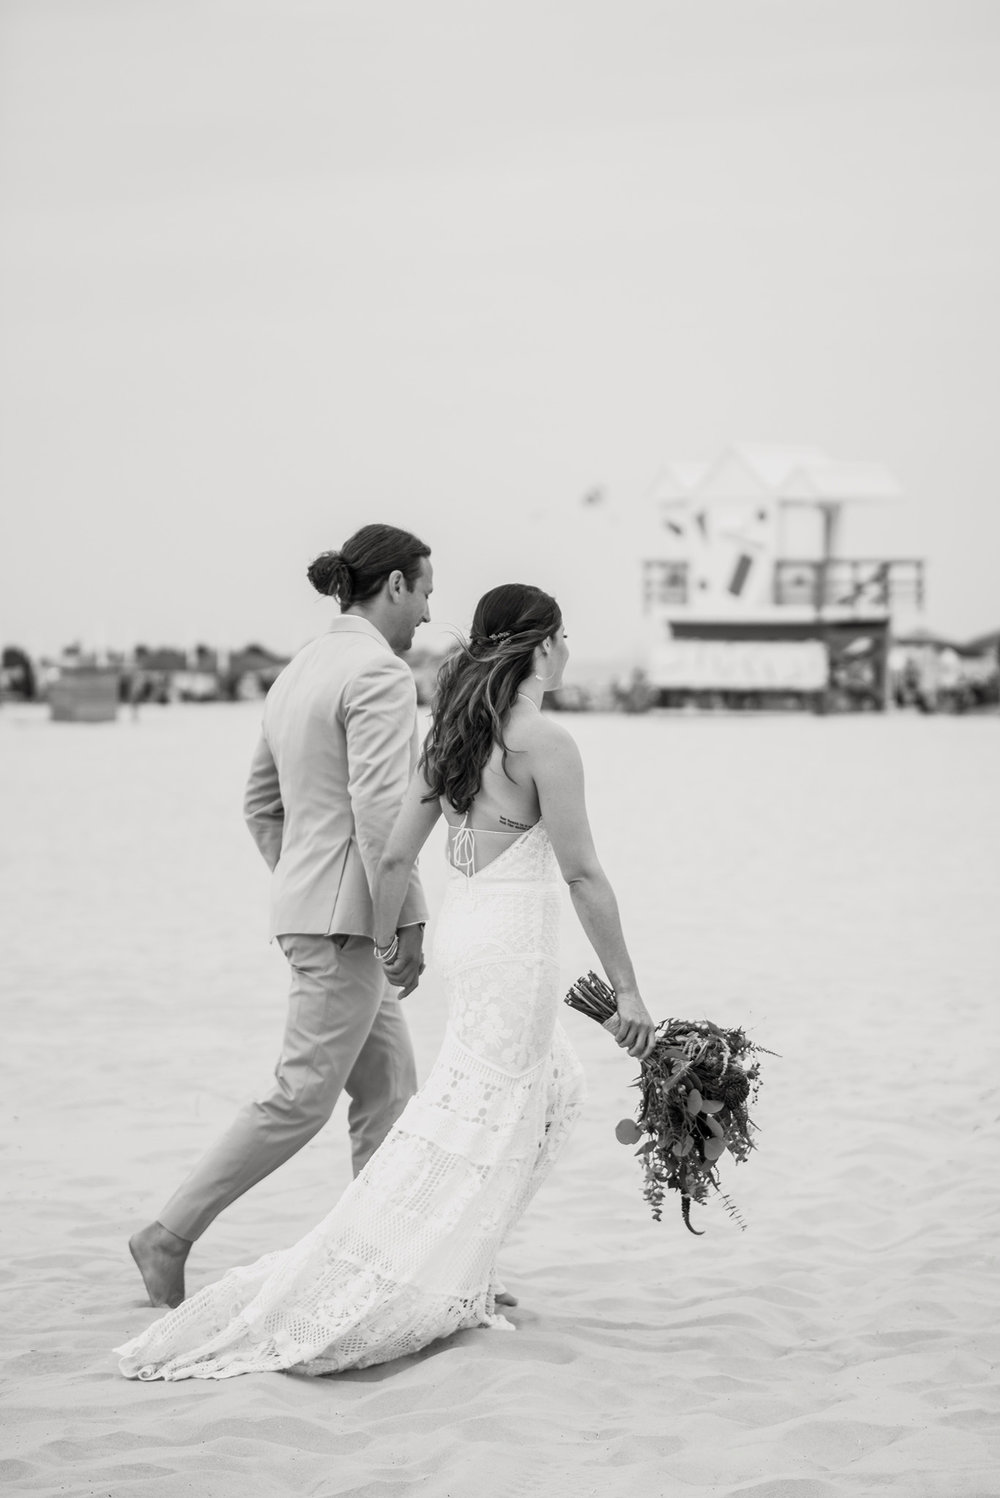 icona_diamond_beach_wedding_38.jpg